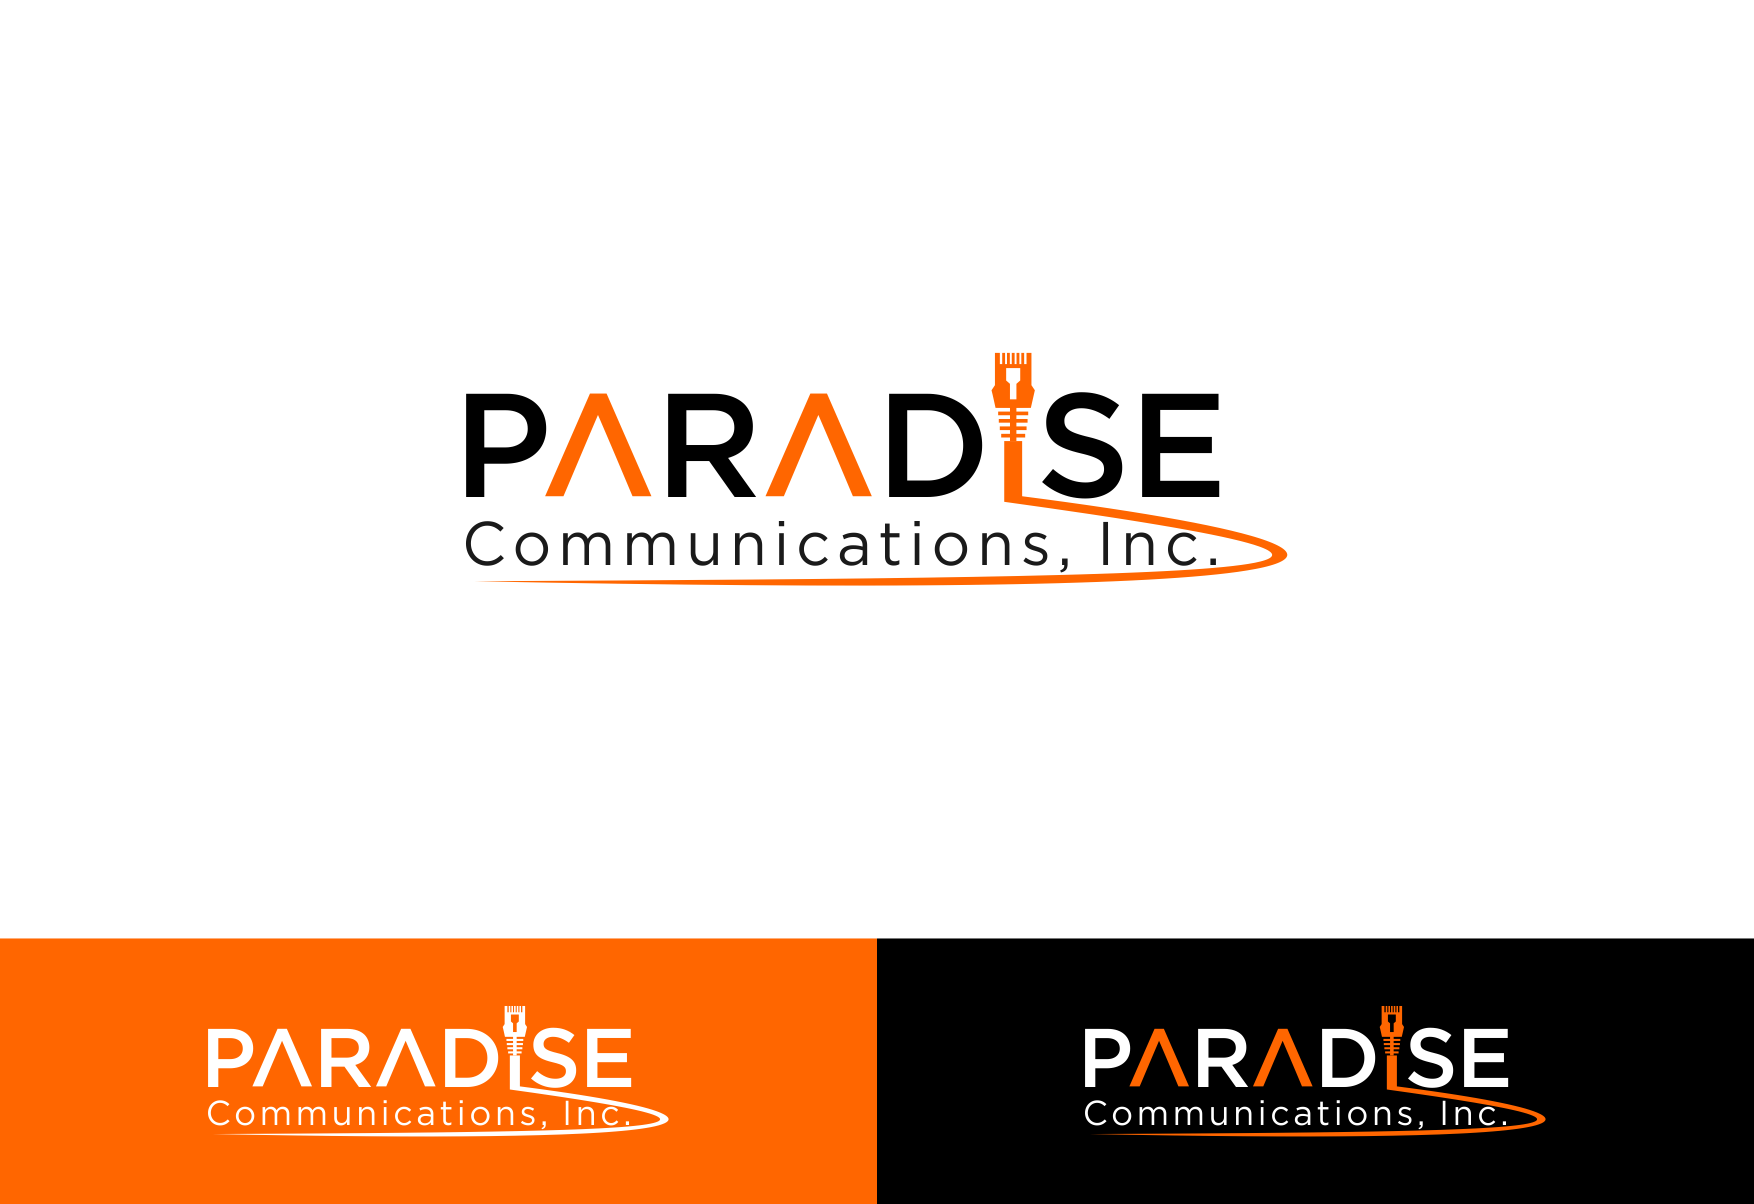 Bring new energy into an old company-Paradise Communications